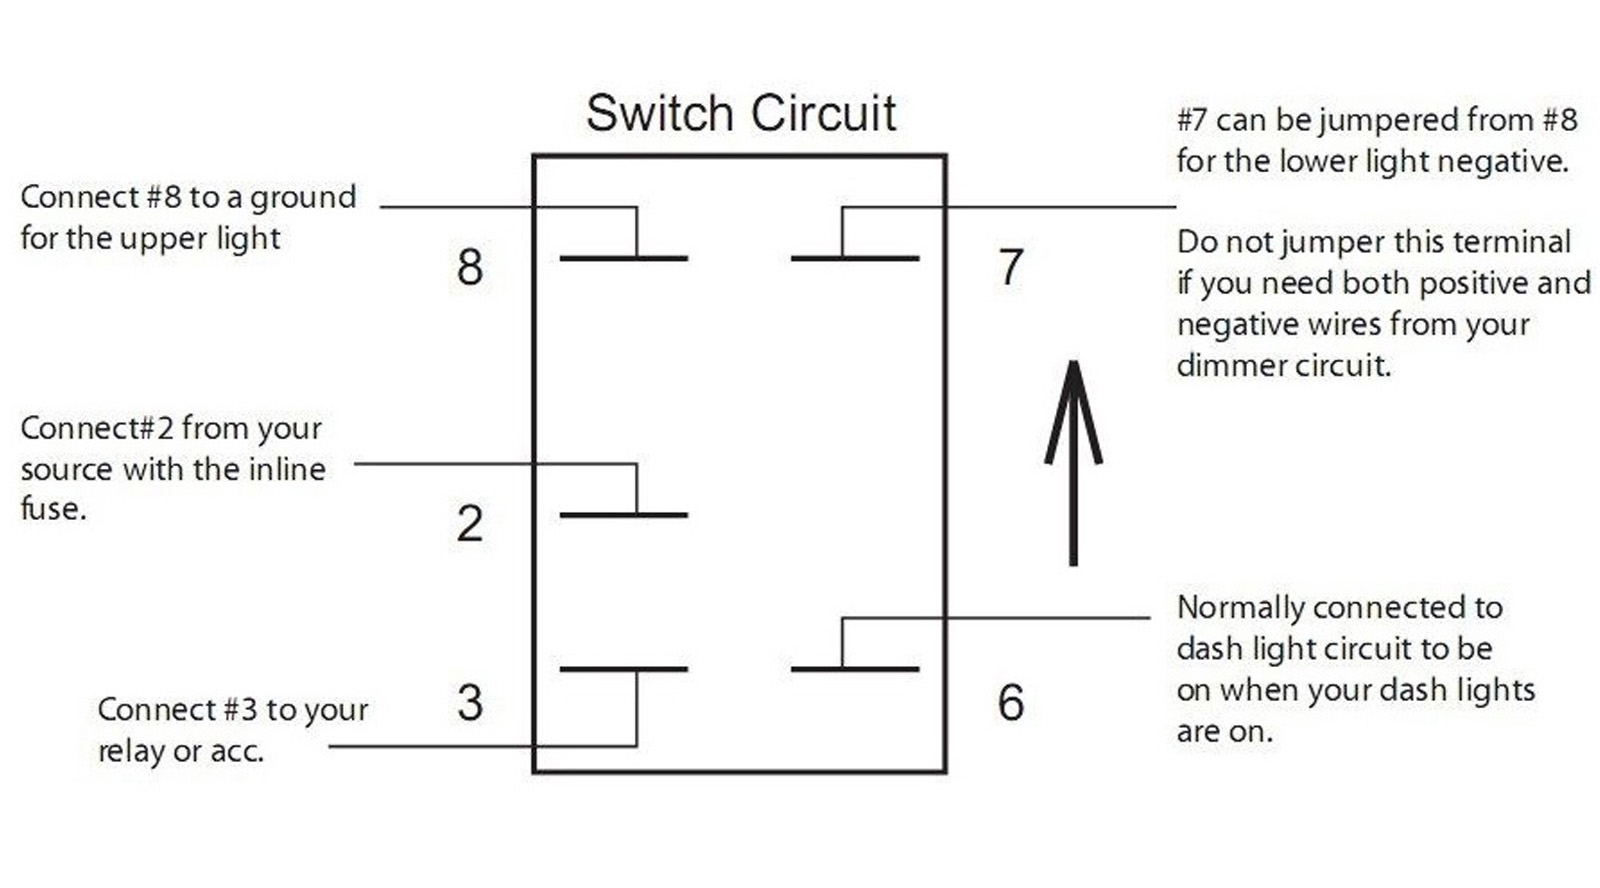 12 Volt Rocker Switch With Light Wiring Diagram - Database ...